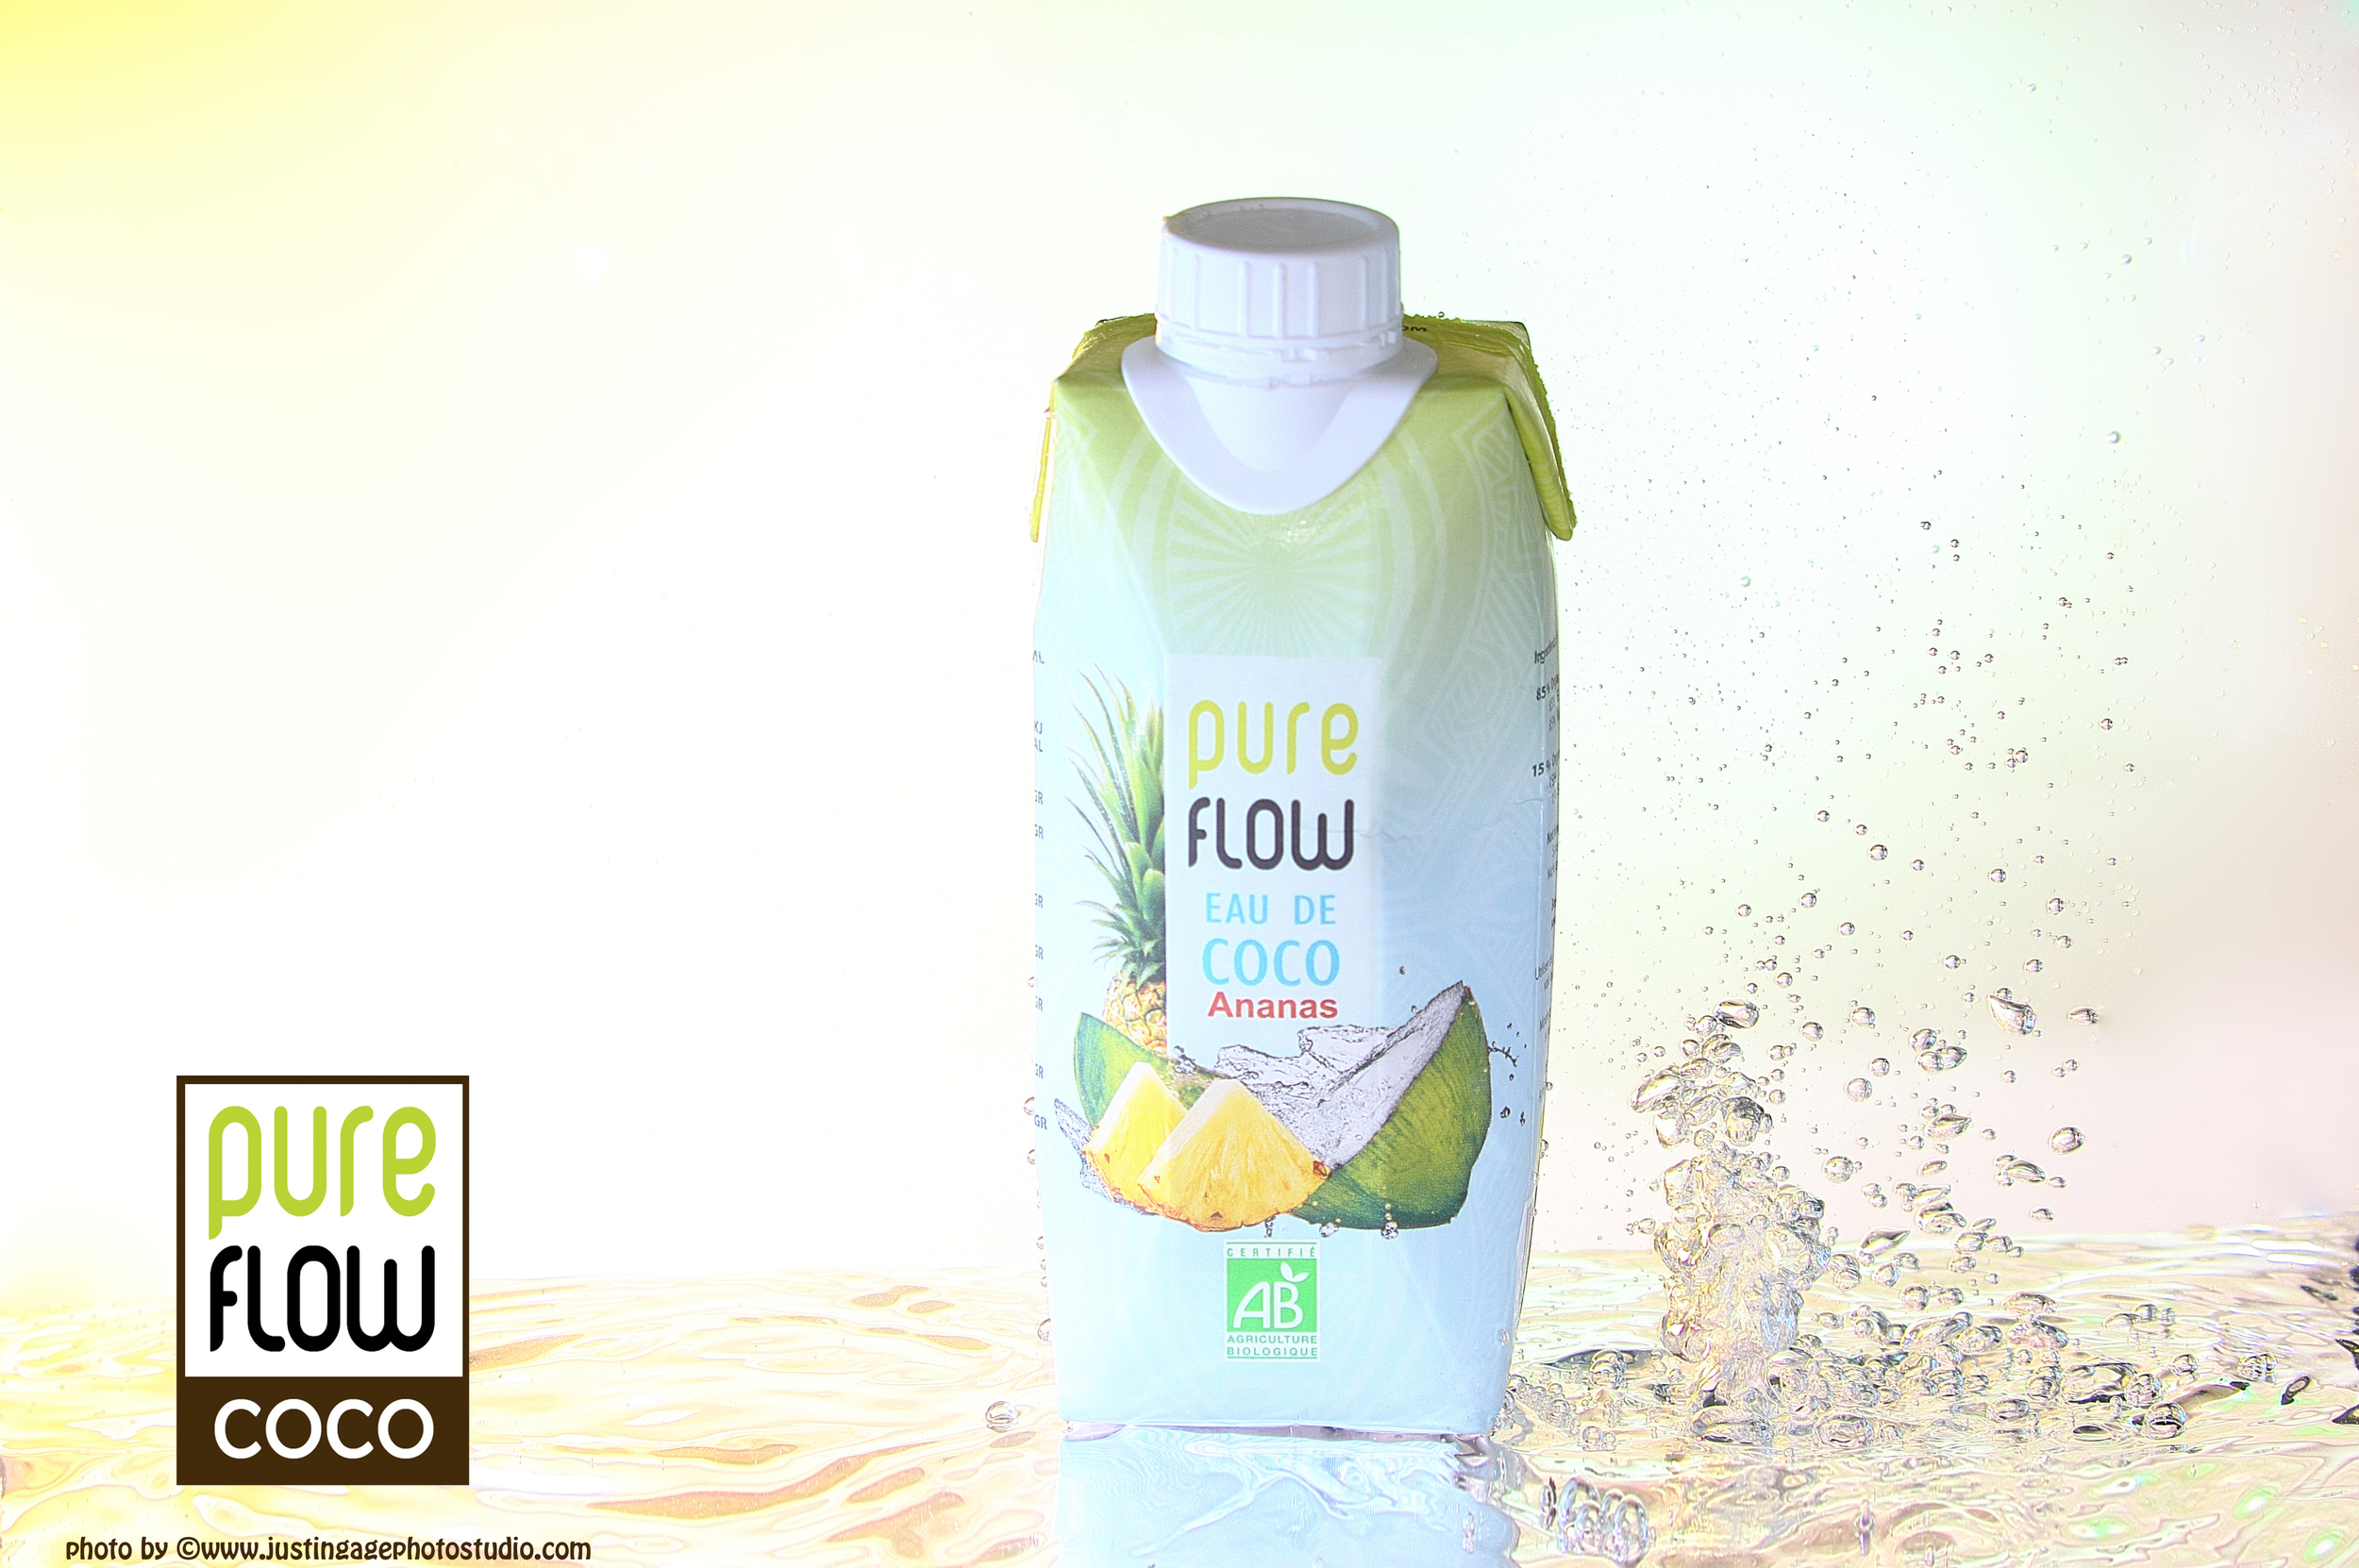 Pure Flow Coco has been created to bring to market a range of Nutritious, Organic and Sustainable Coconut products.